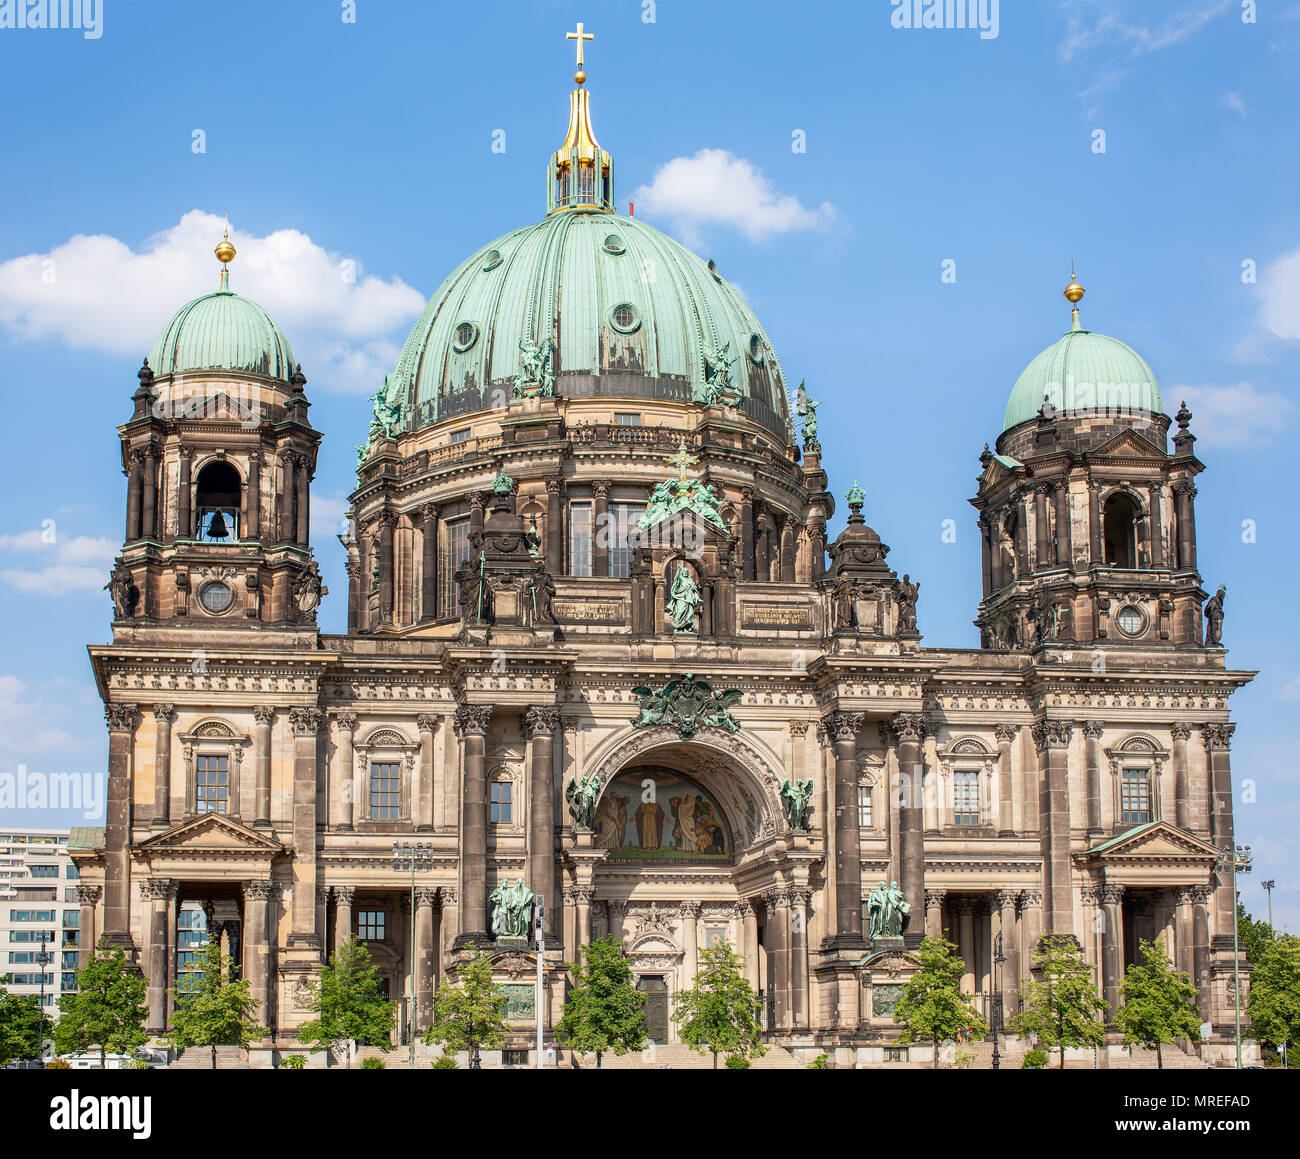 Berliner Dom Berlin Germany Berlin Cathedral Completed In 1905 And Survived World War Two Stock Photo Alamy